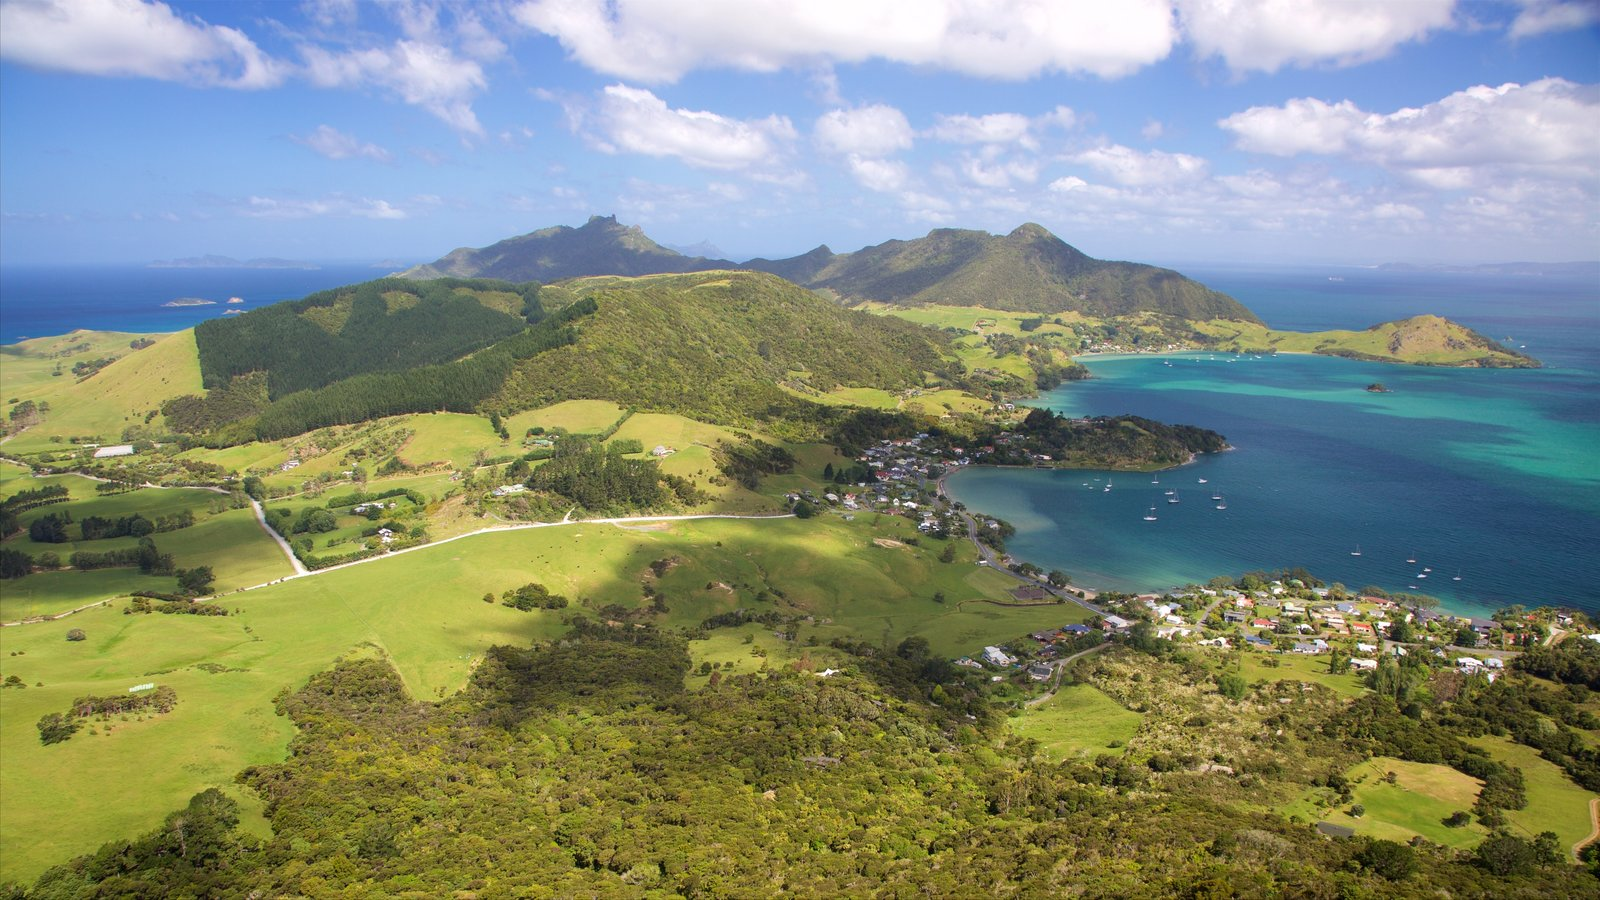 Mount Manaia featuring a coastal town, tranquil scenes and a bay or harbor